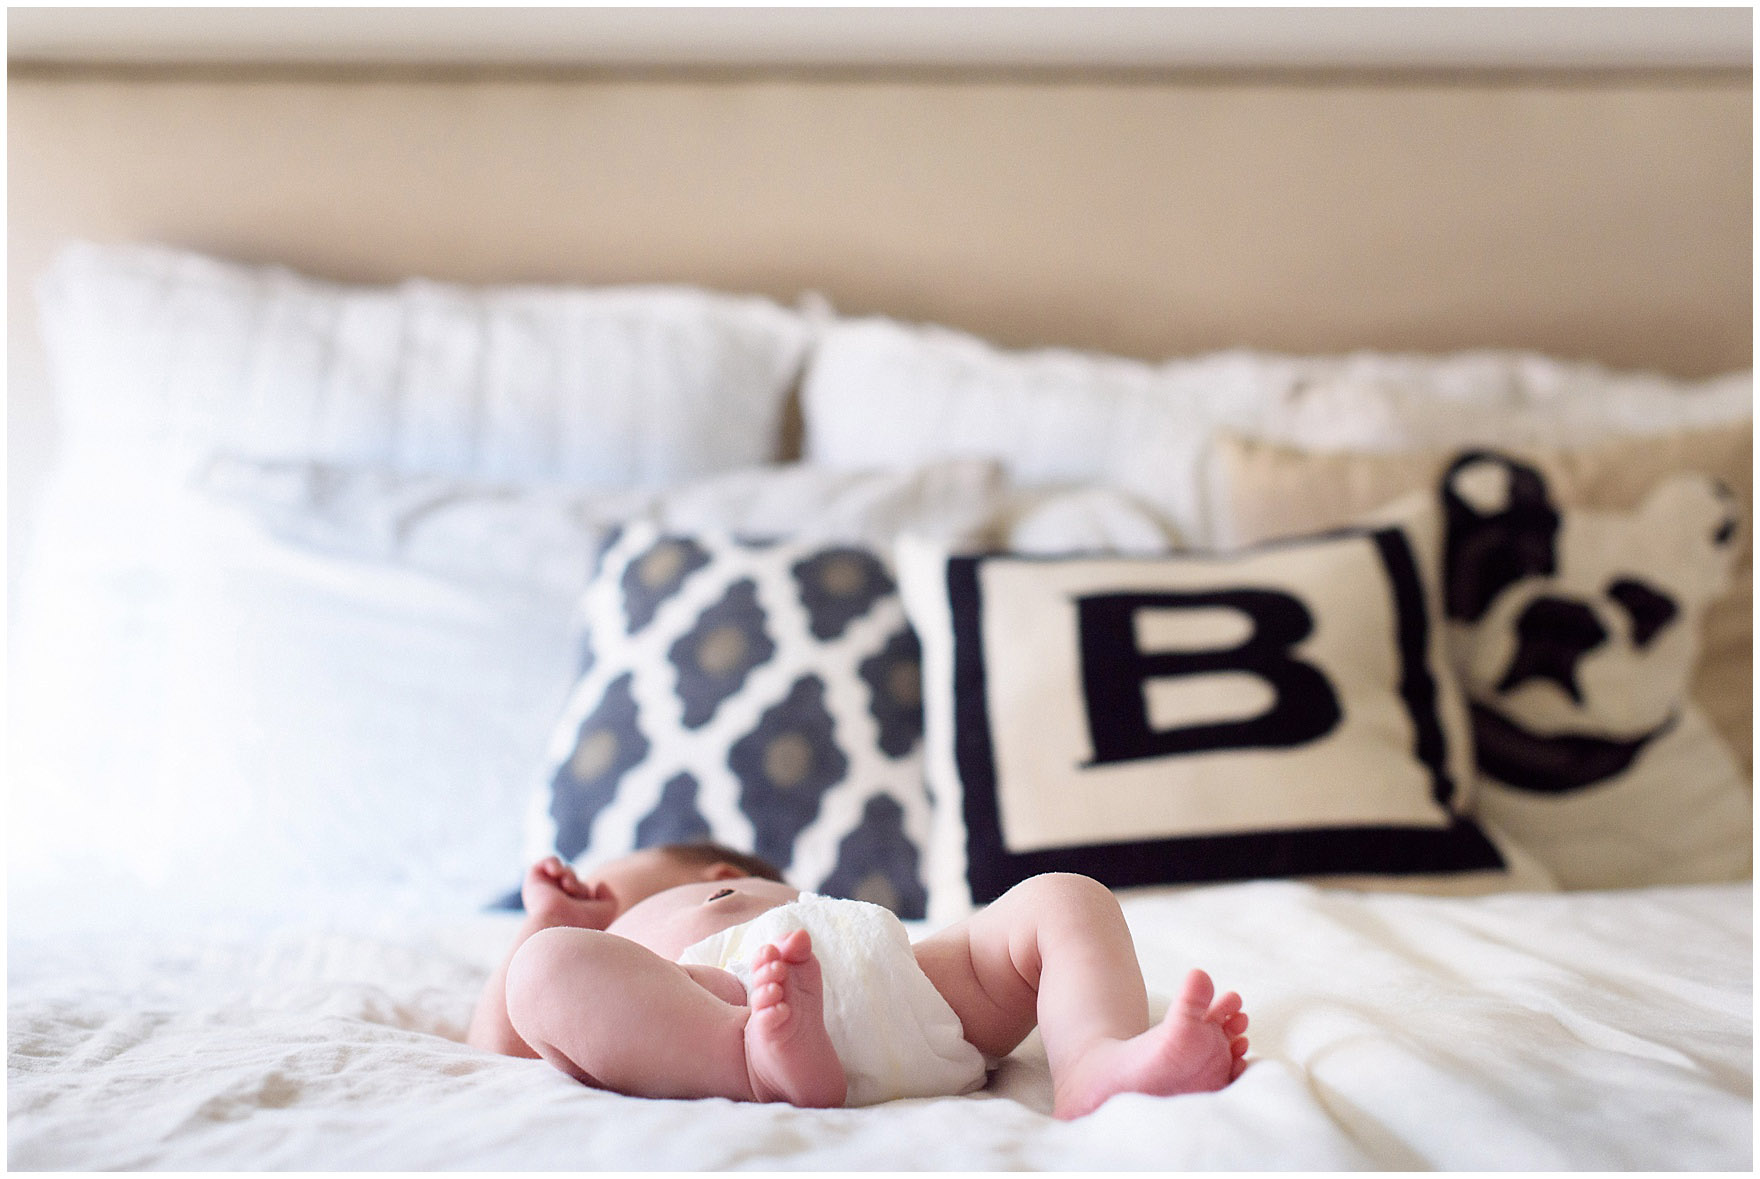 A newborn baby lays on a white duvet during a Chicago newborn baby photography session.